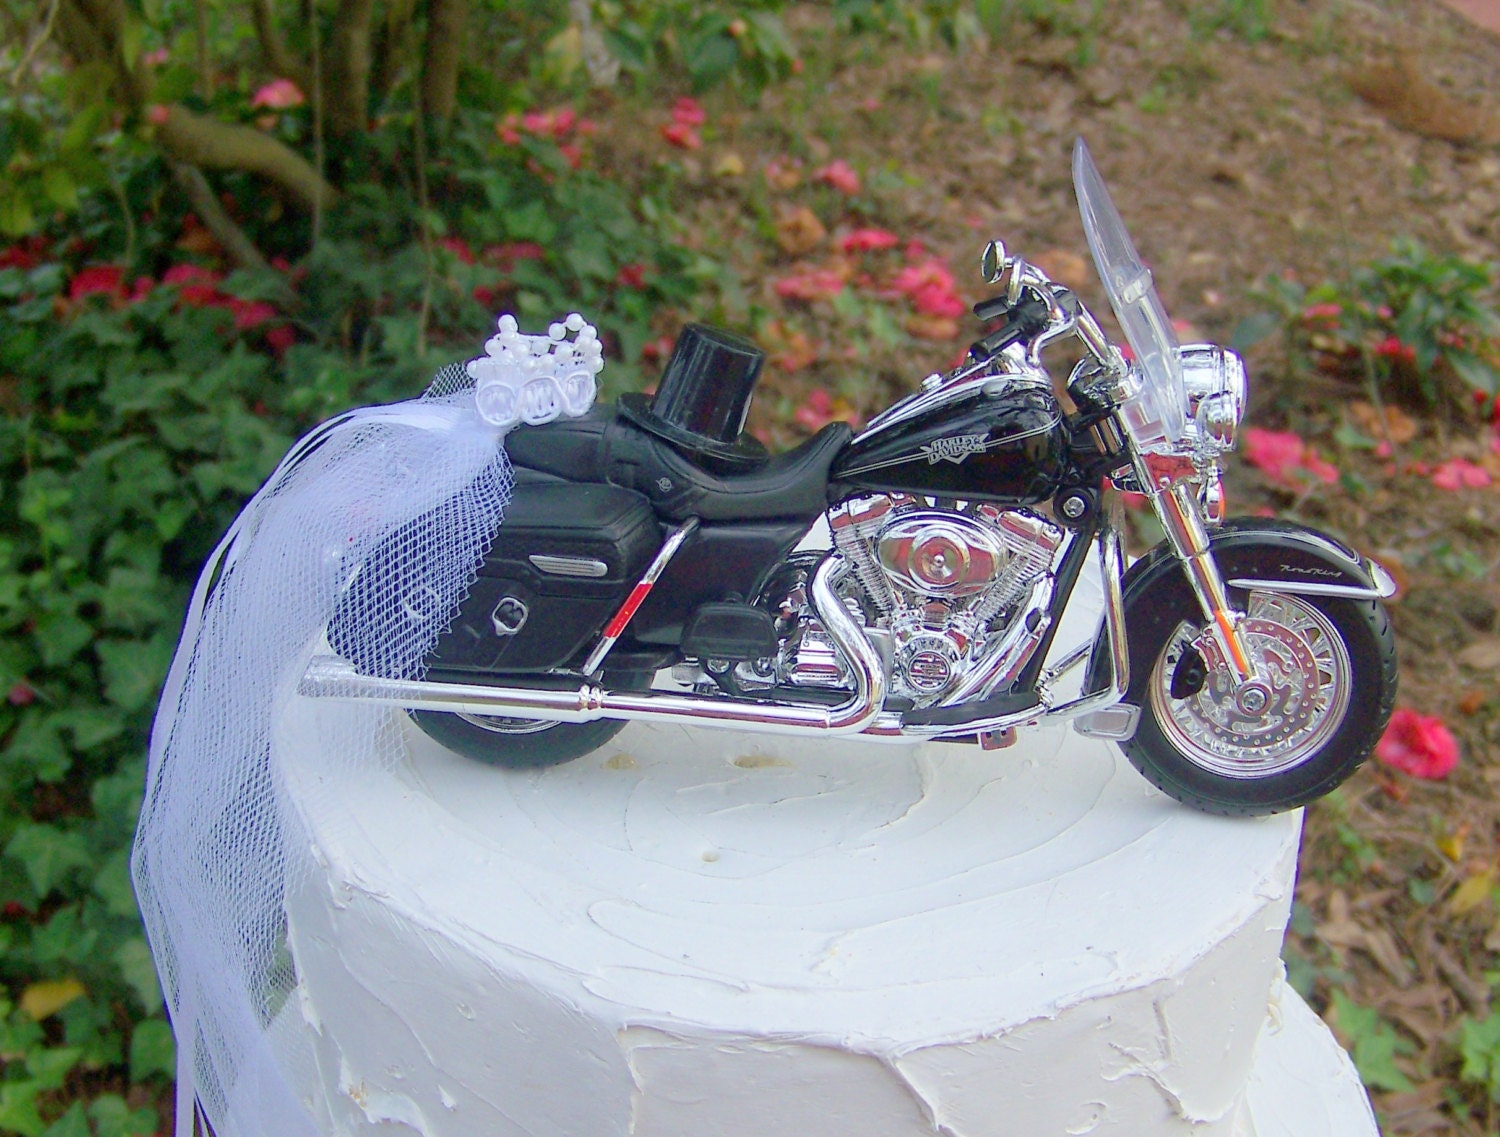 harley davidson road king wedding cake toppers motorcycle cake topper harley davidson 2013 road king 15070